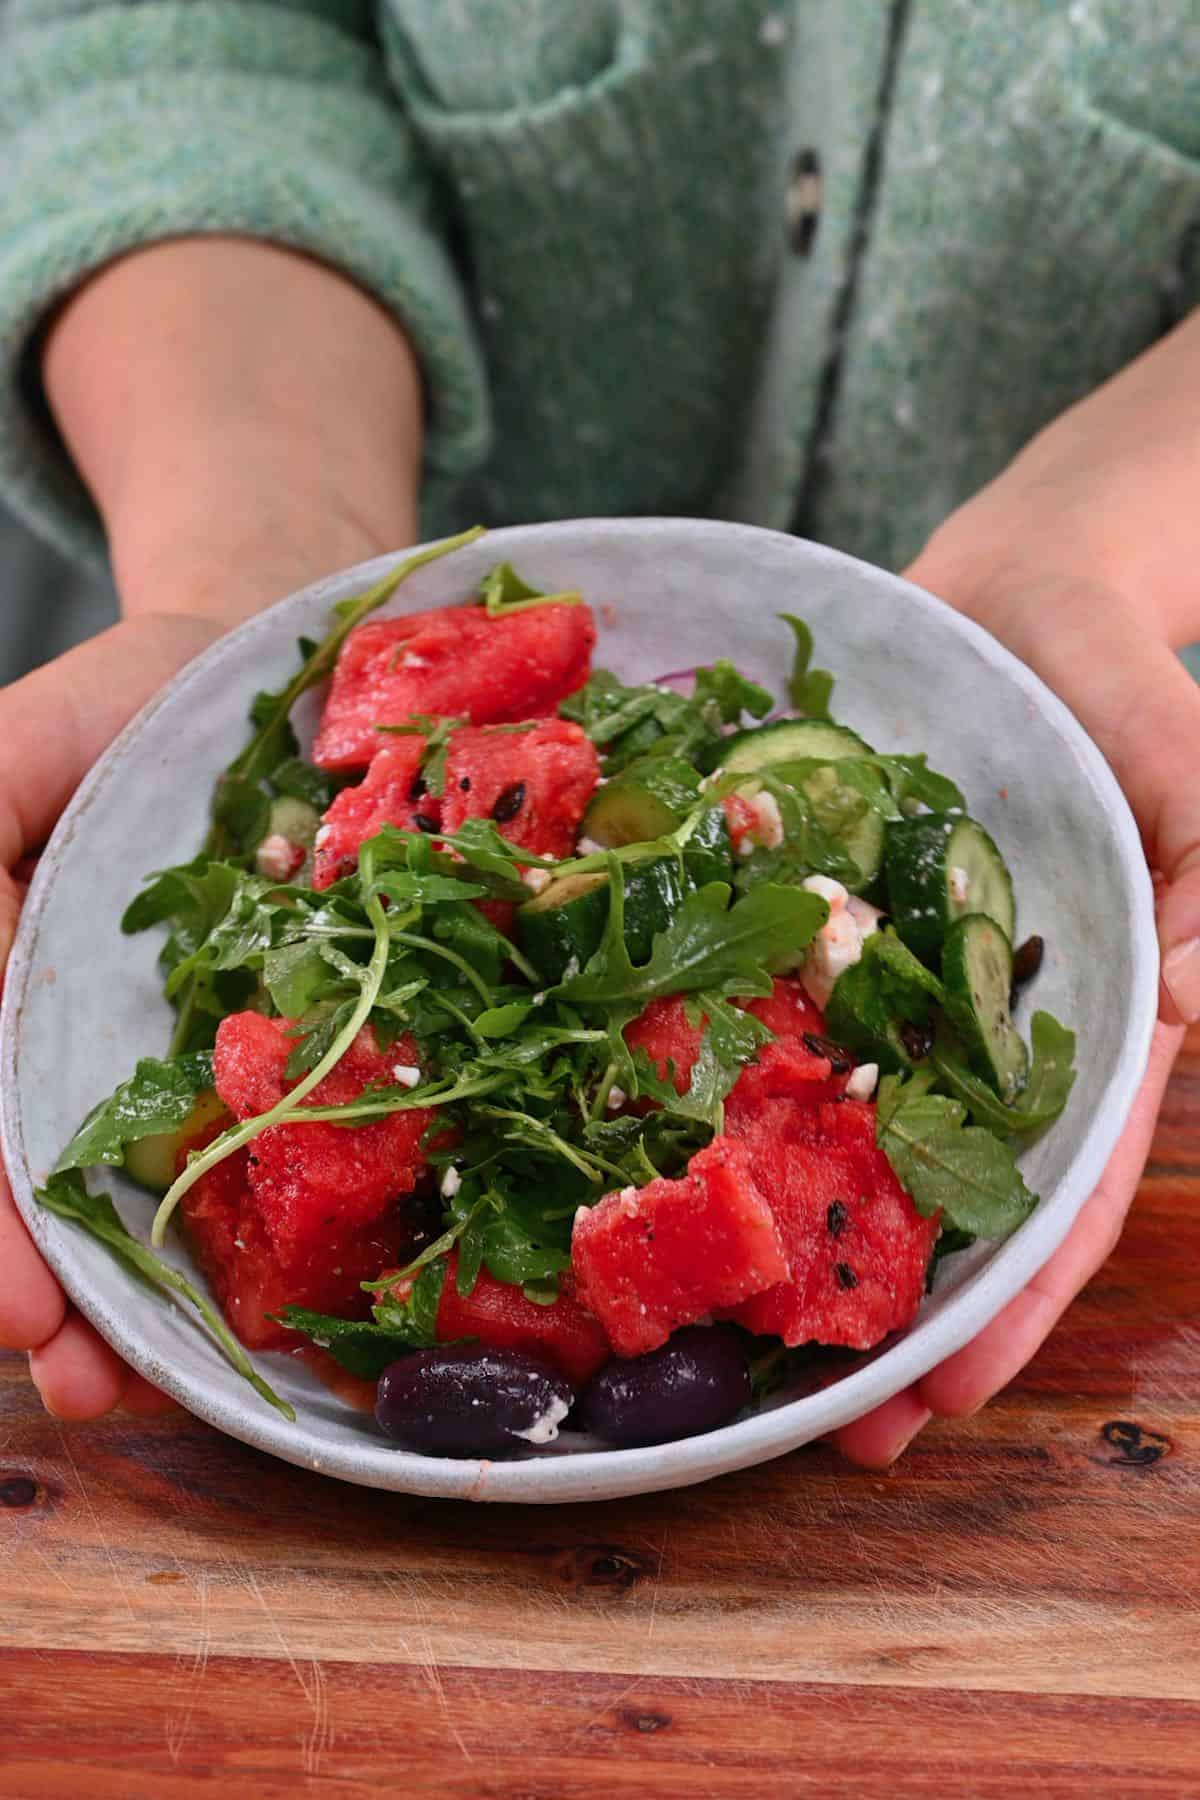 A serving of watermelon salad